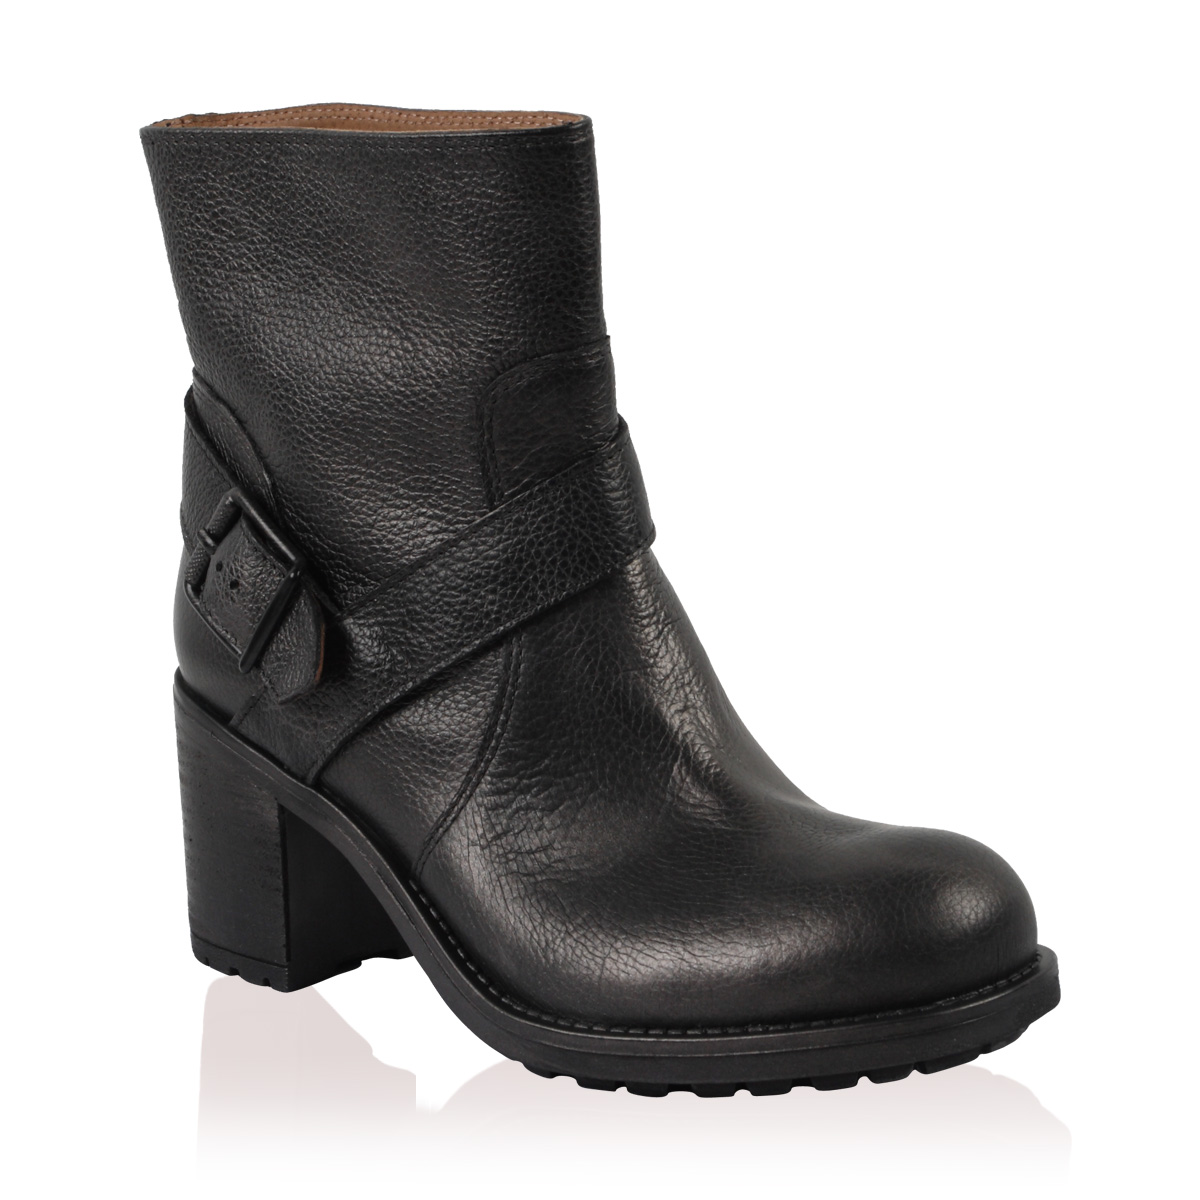 NEW-PIED-A-TERRE-LADIES-PLOT-WOMENS-PEWTER-GREY-BLOCK-HEEL-BUCKLE-BOOTS-SIZE-3-8